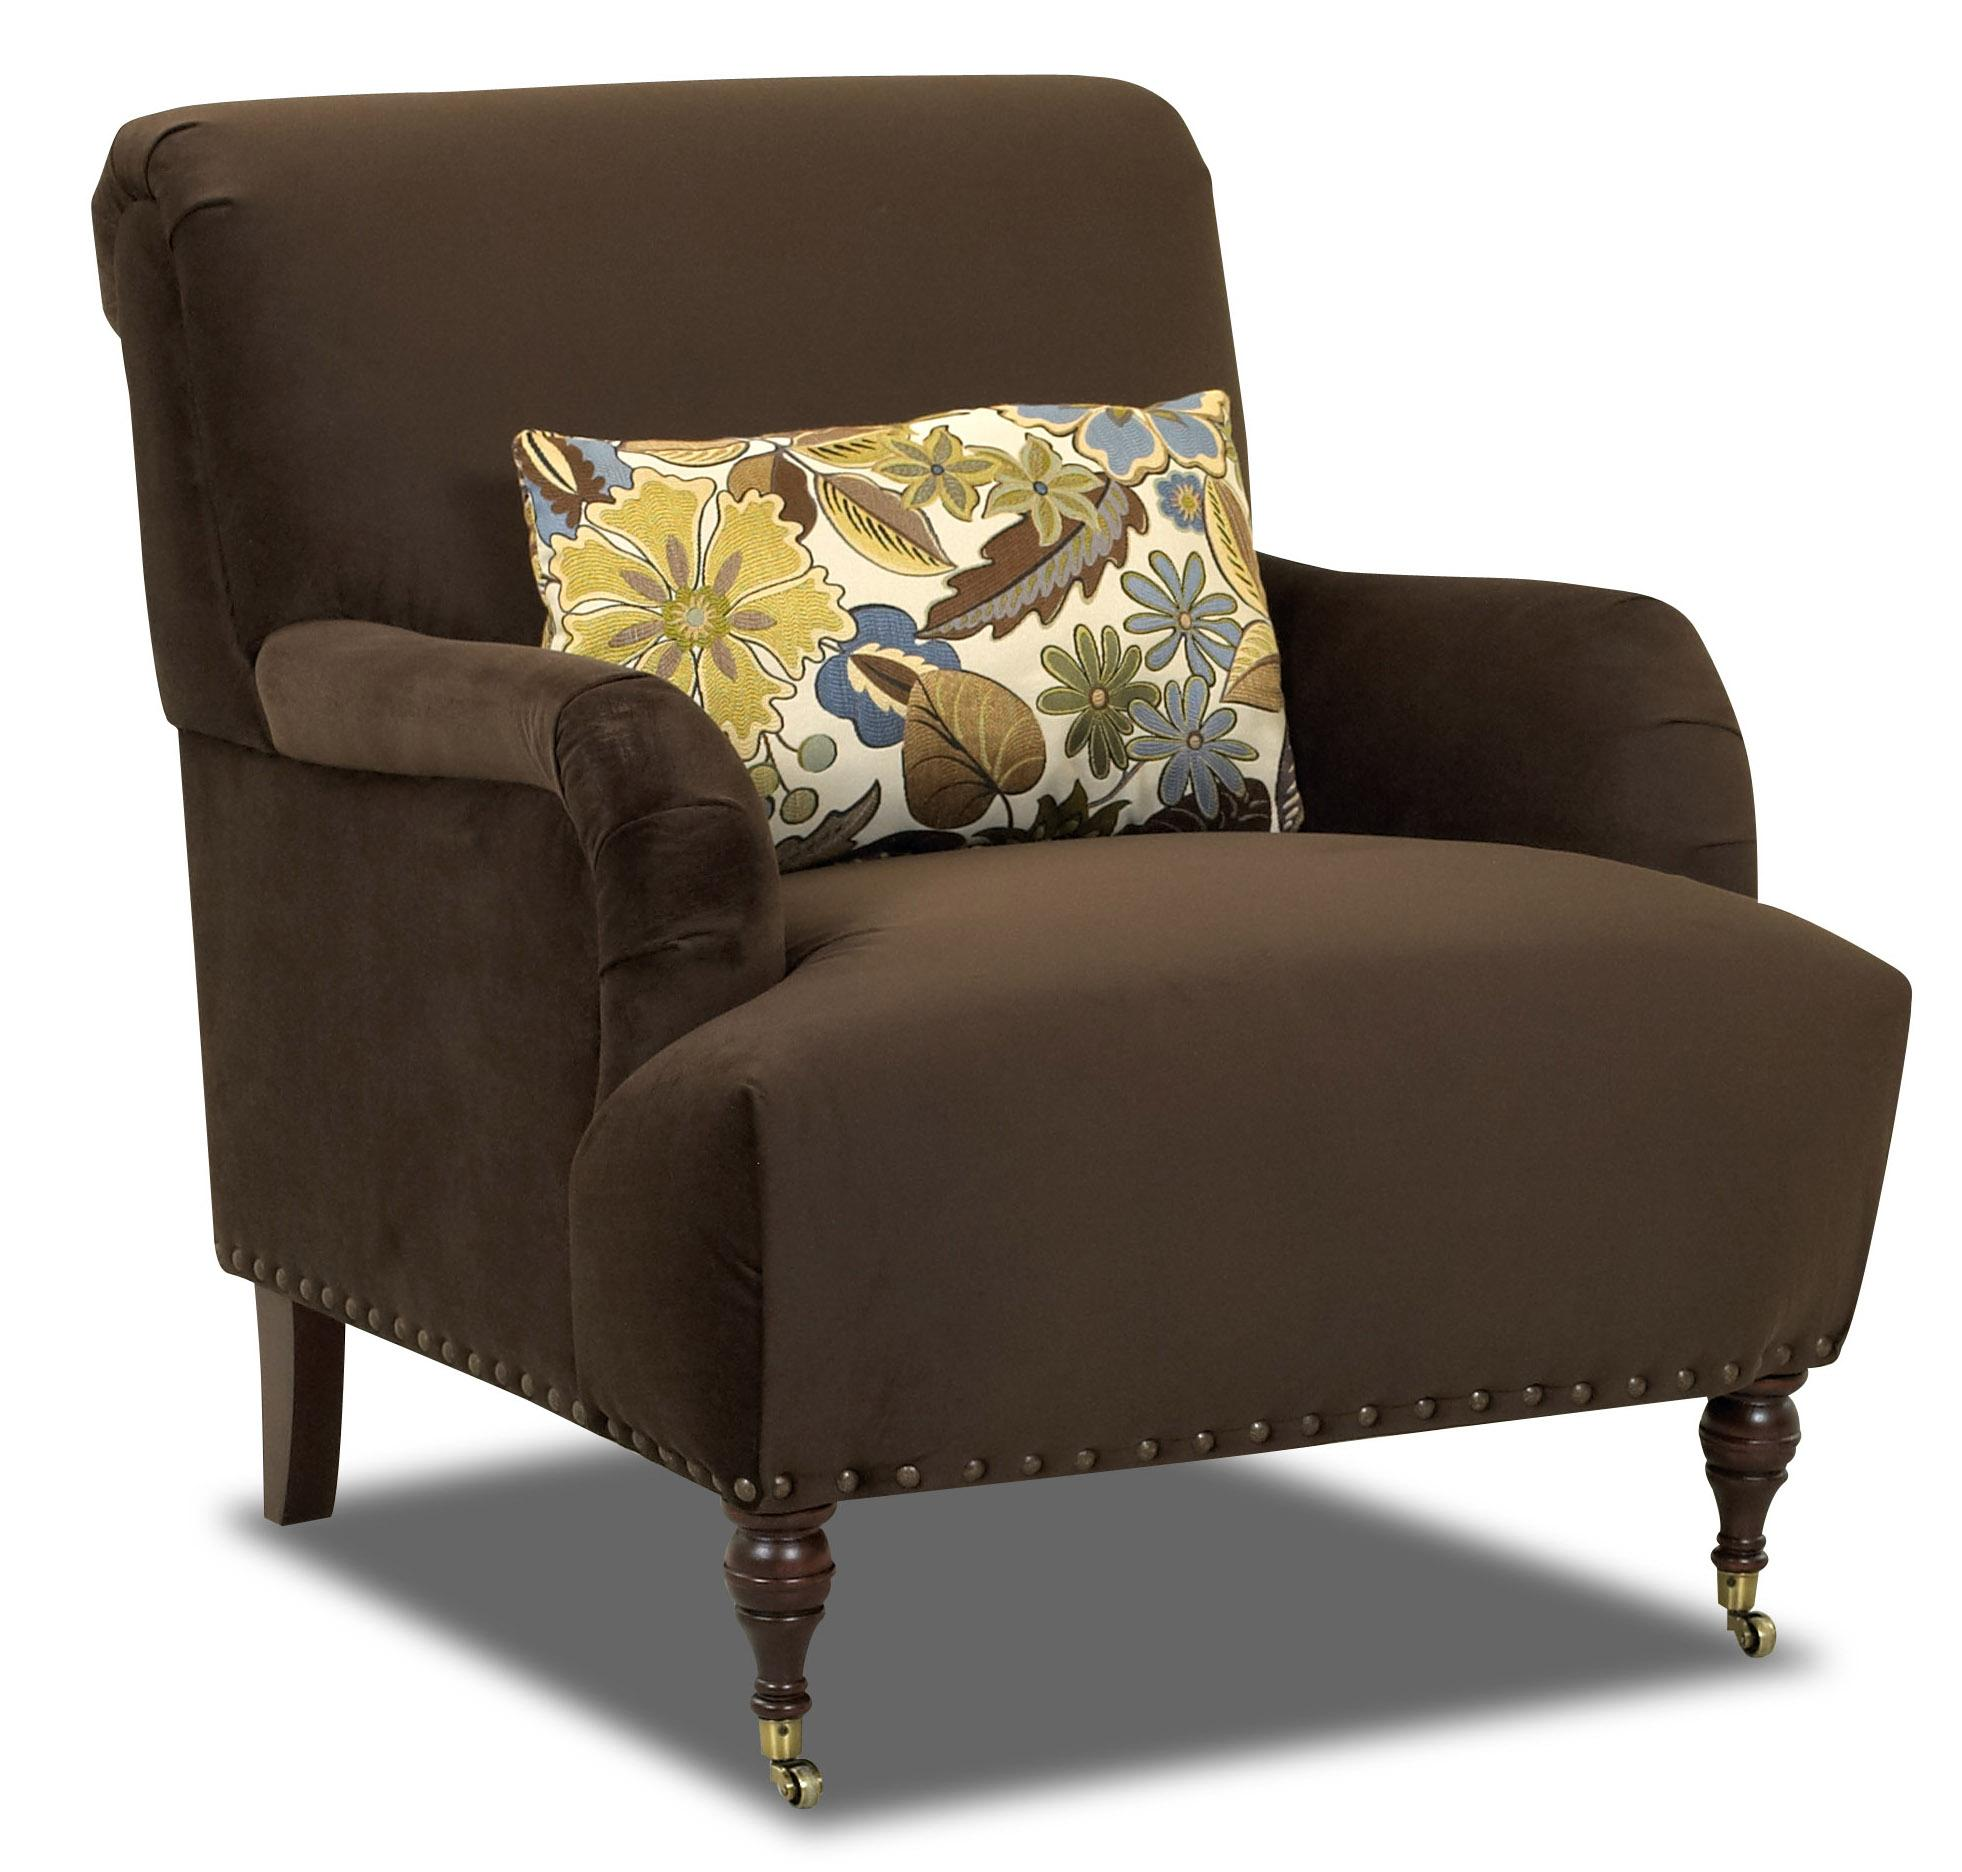 Klaussner dapper 2010 c traditional accent chair with for Traditional sofas with legs